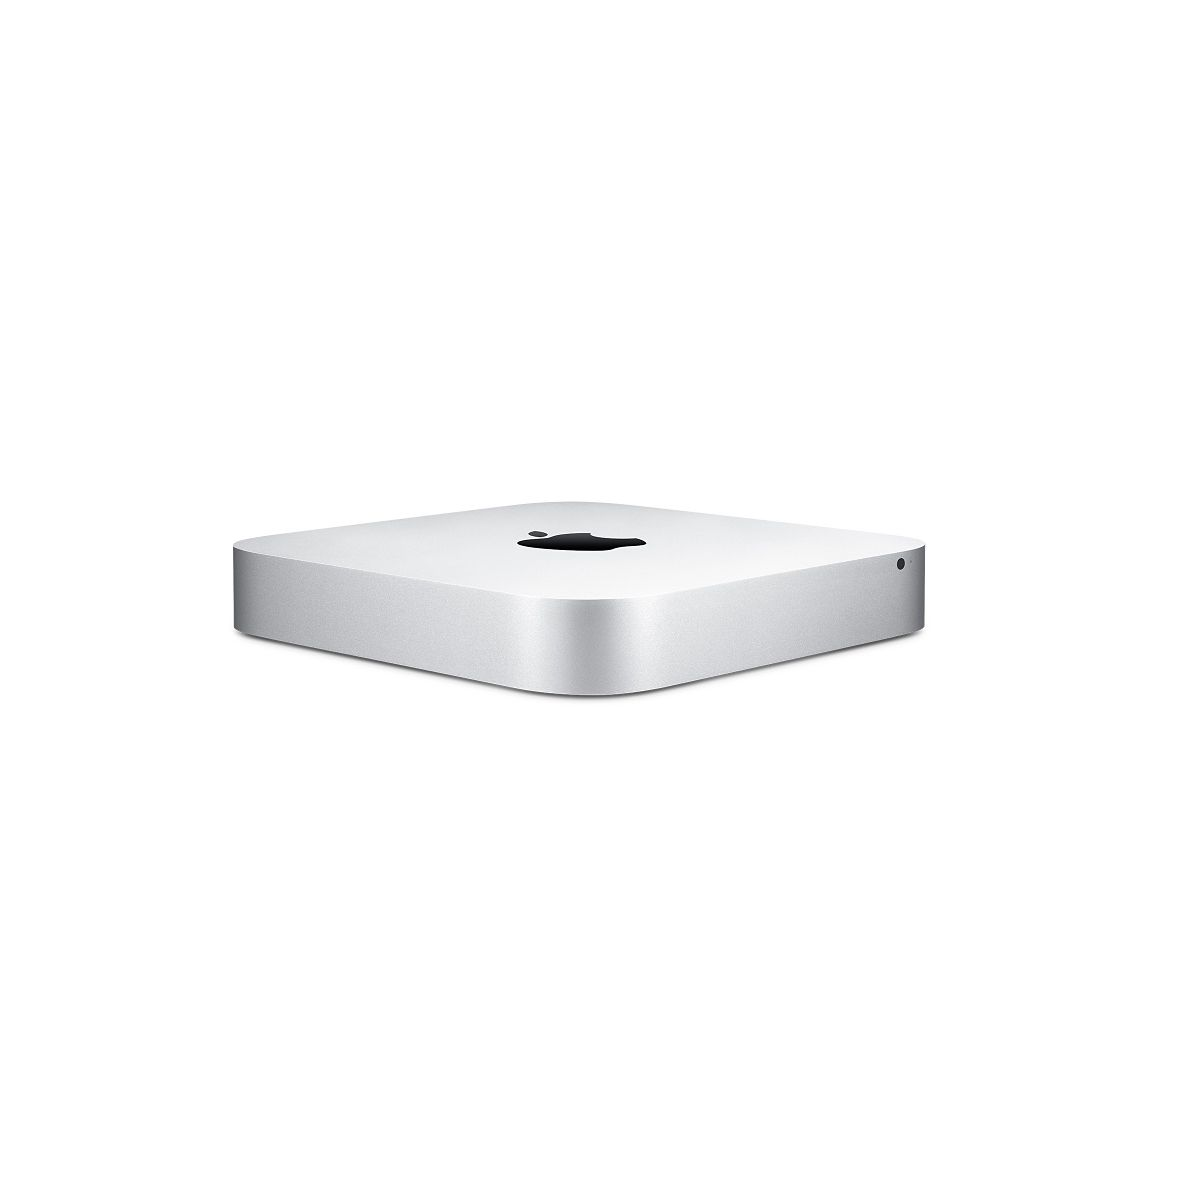 Apple mac mini 1.4ghz 4go 500go - mgem2f/a